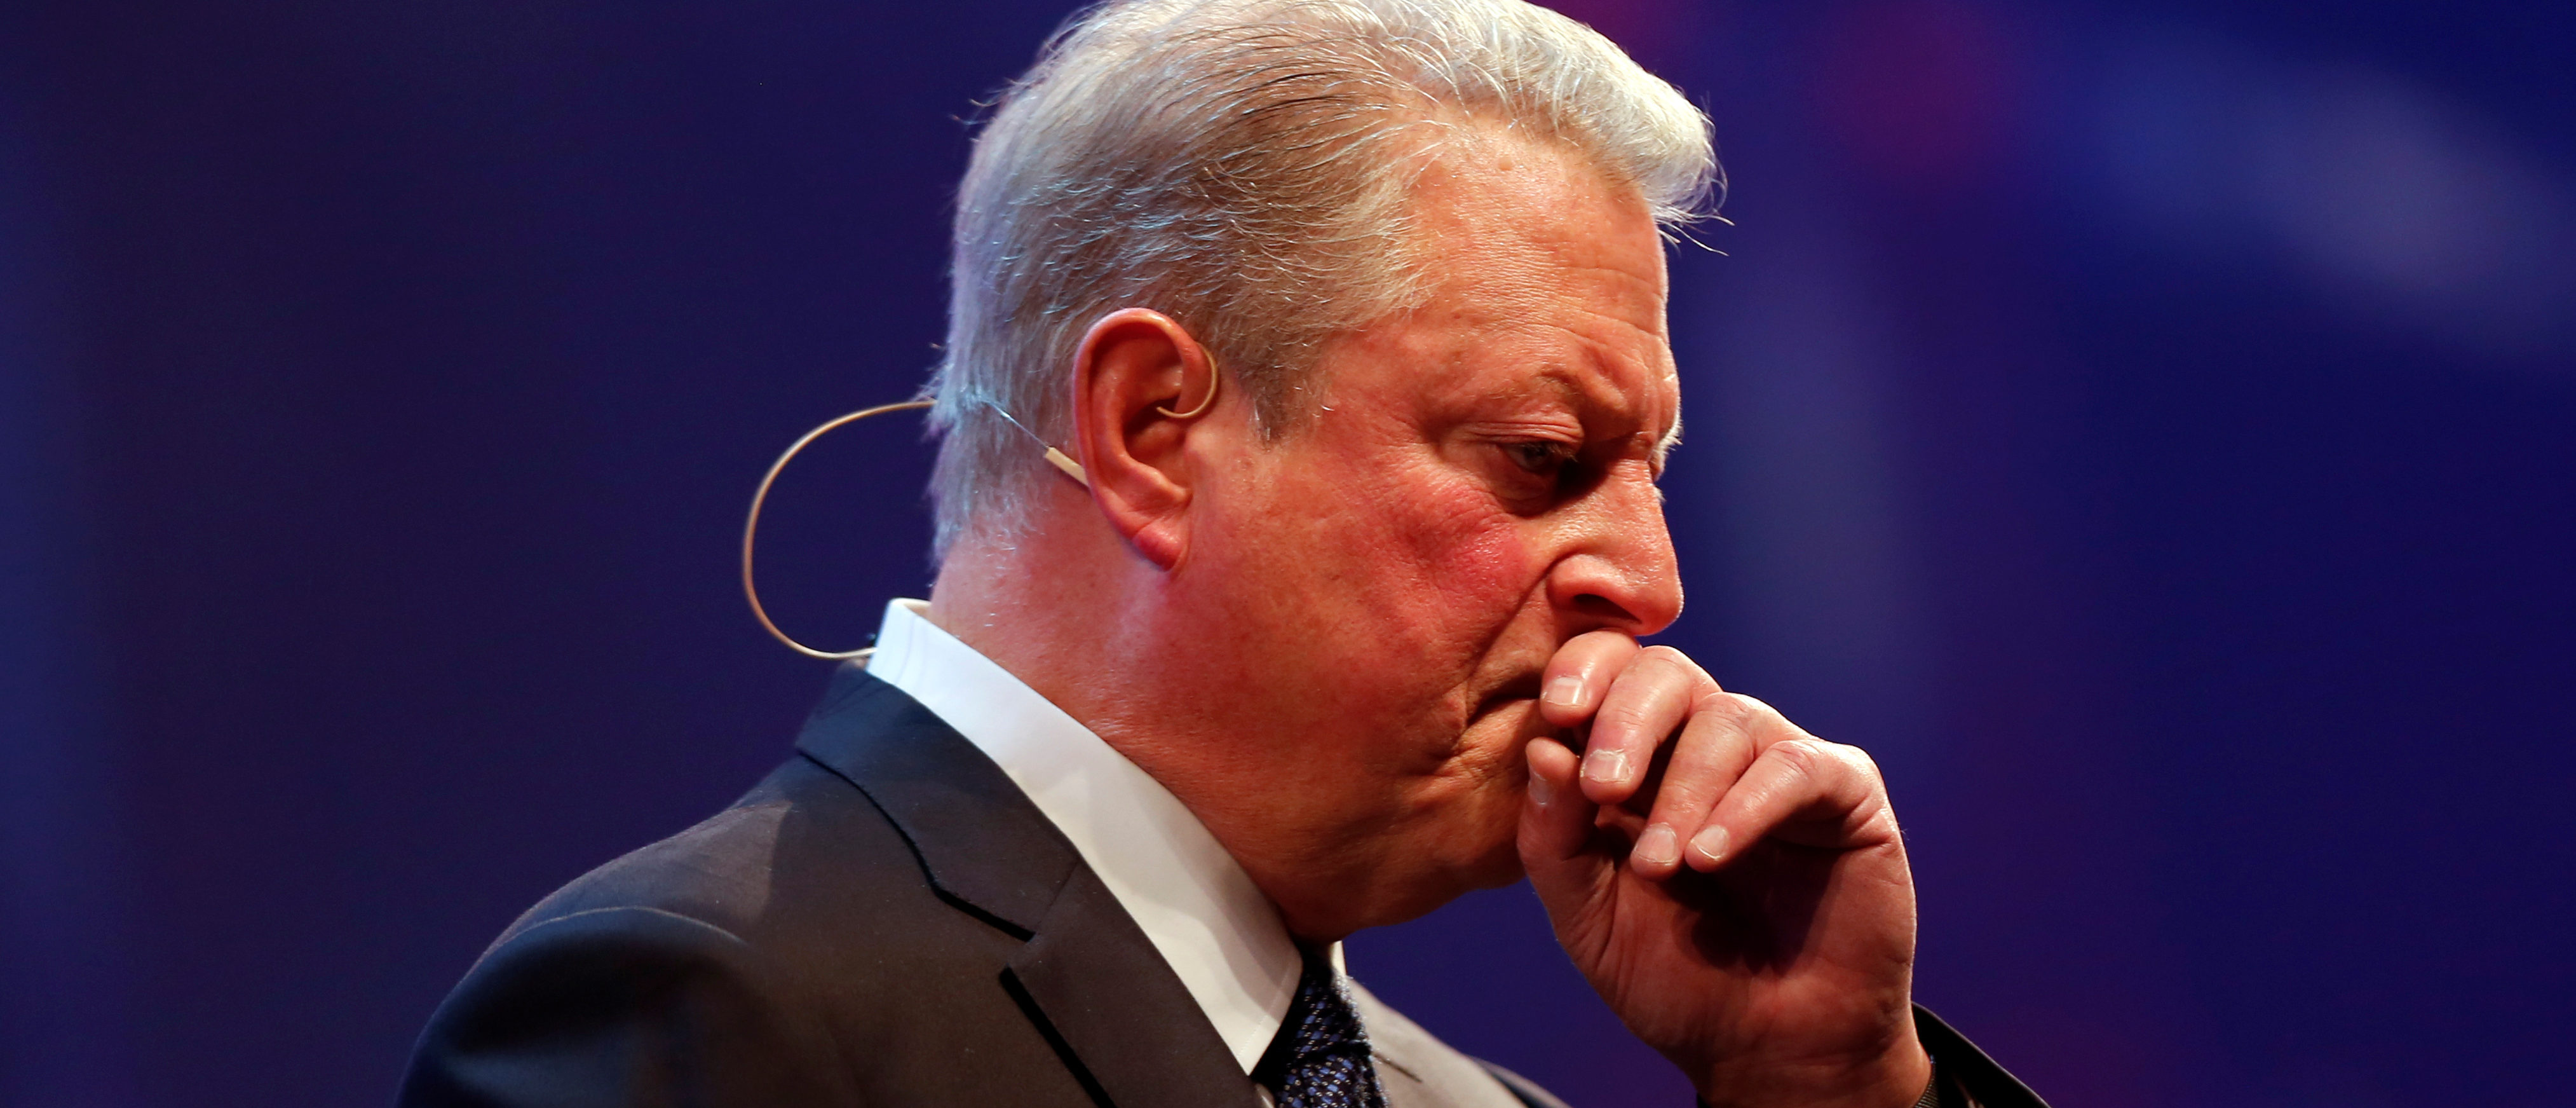 Al Gore chairman of Generation Investment Management gestures during the Web Summit, Europe's biggest tech conference, in Lisbon, Portugal, November 9, 2017. REUTERS/Pedro Nunes